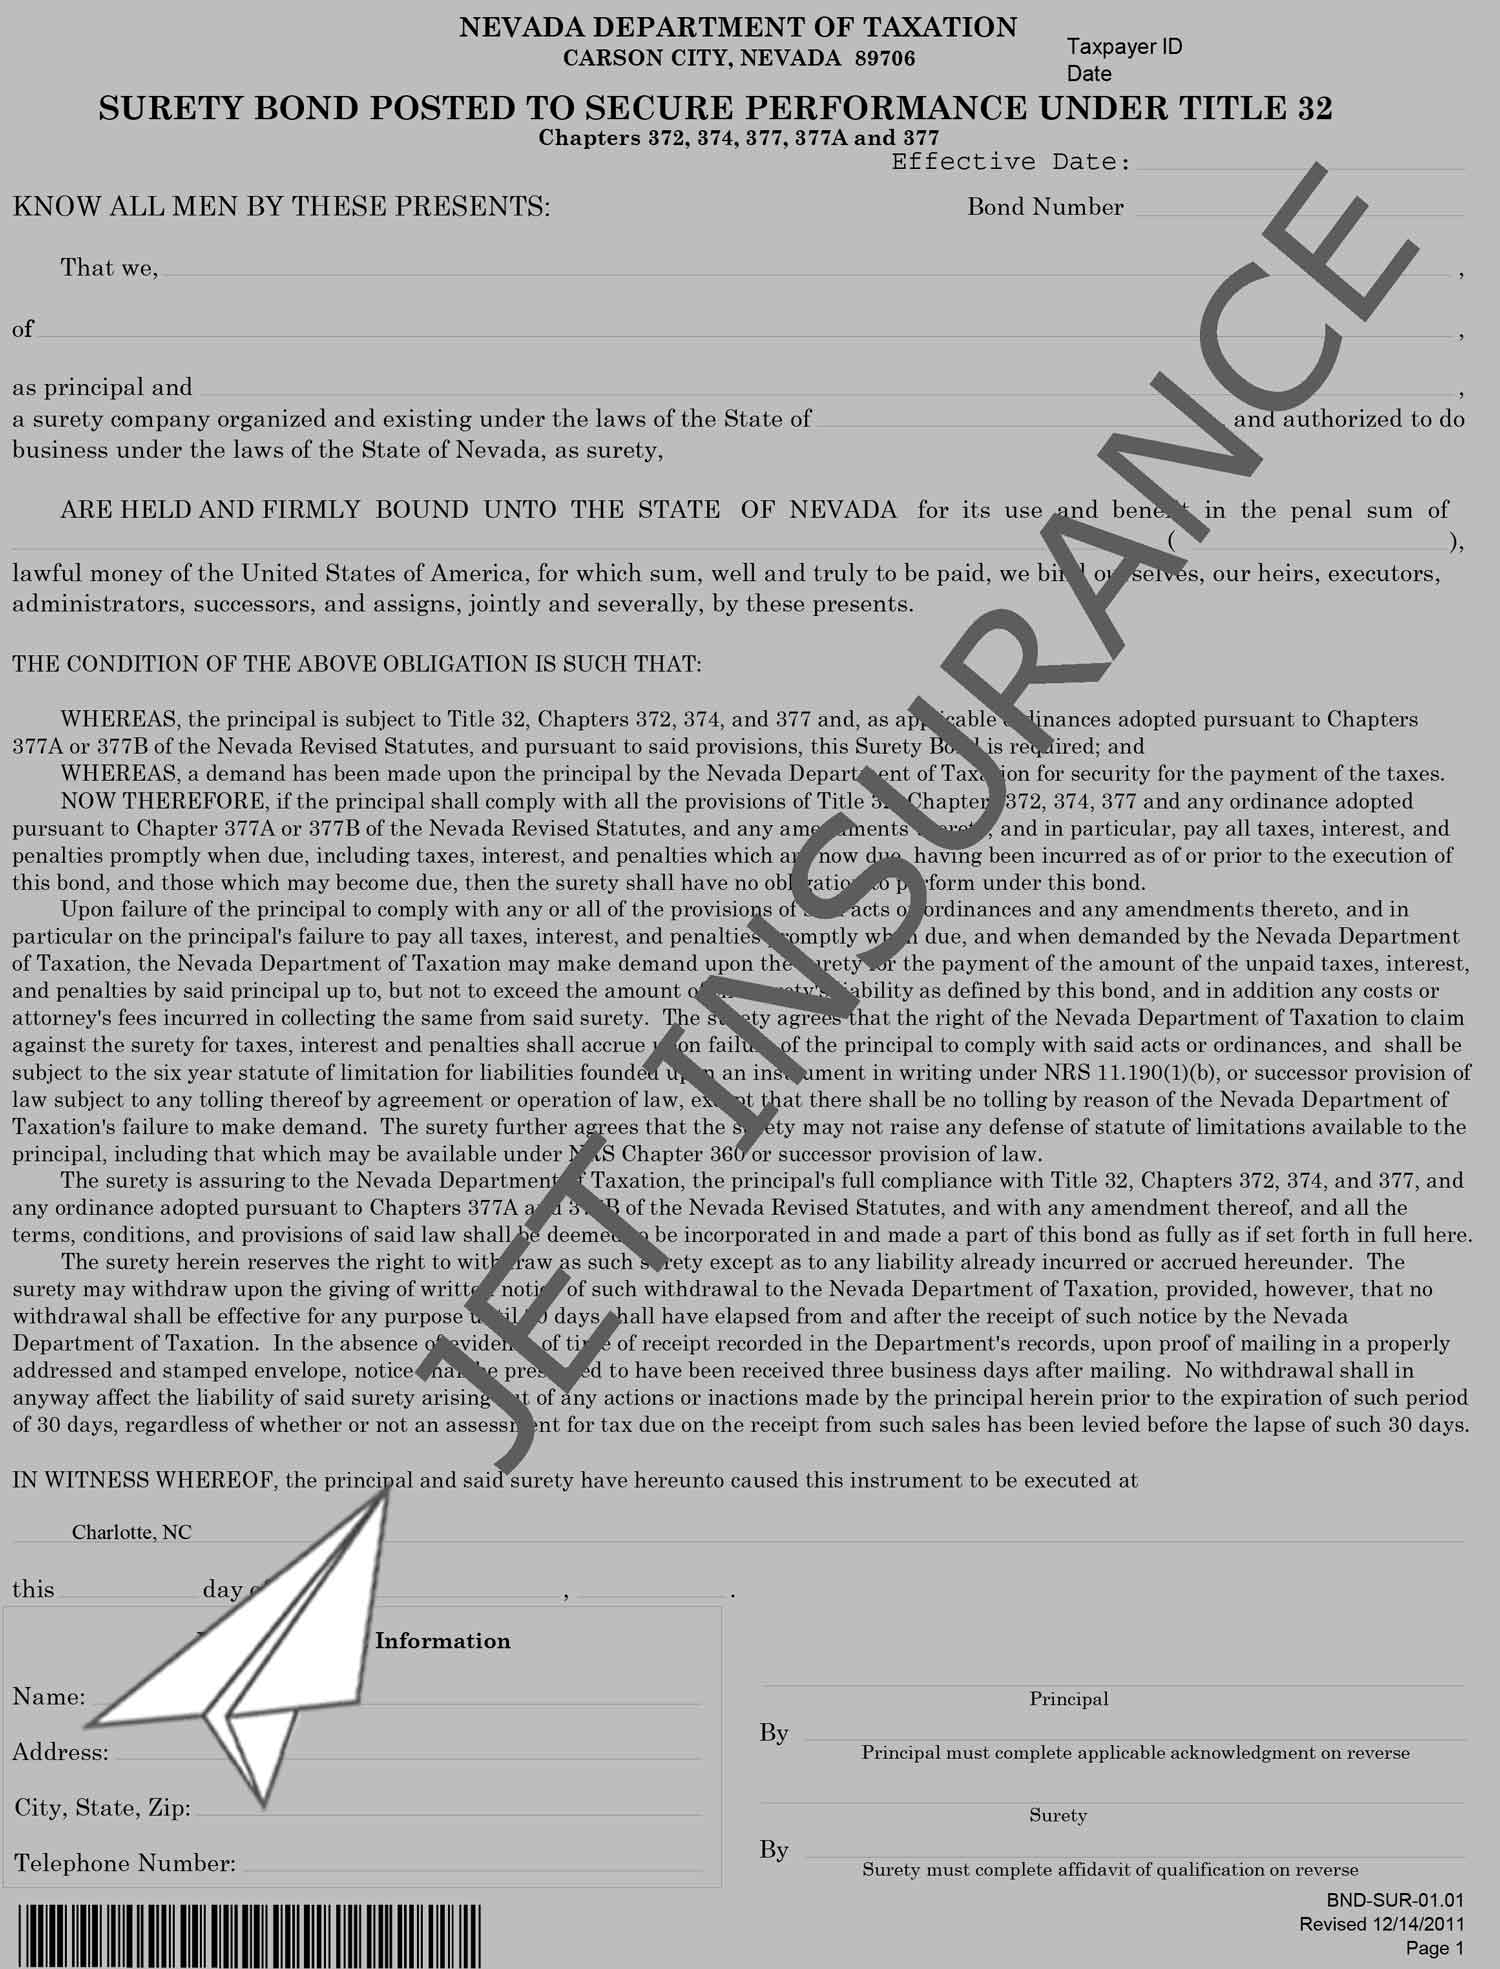 Nevada Sales and Use Tax Bond Form